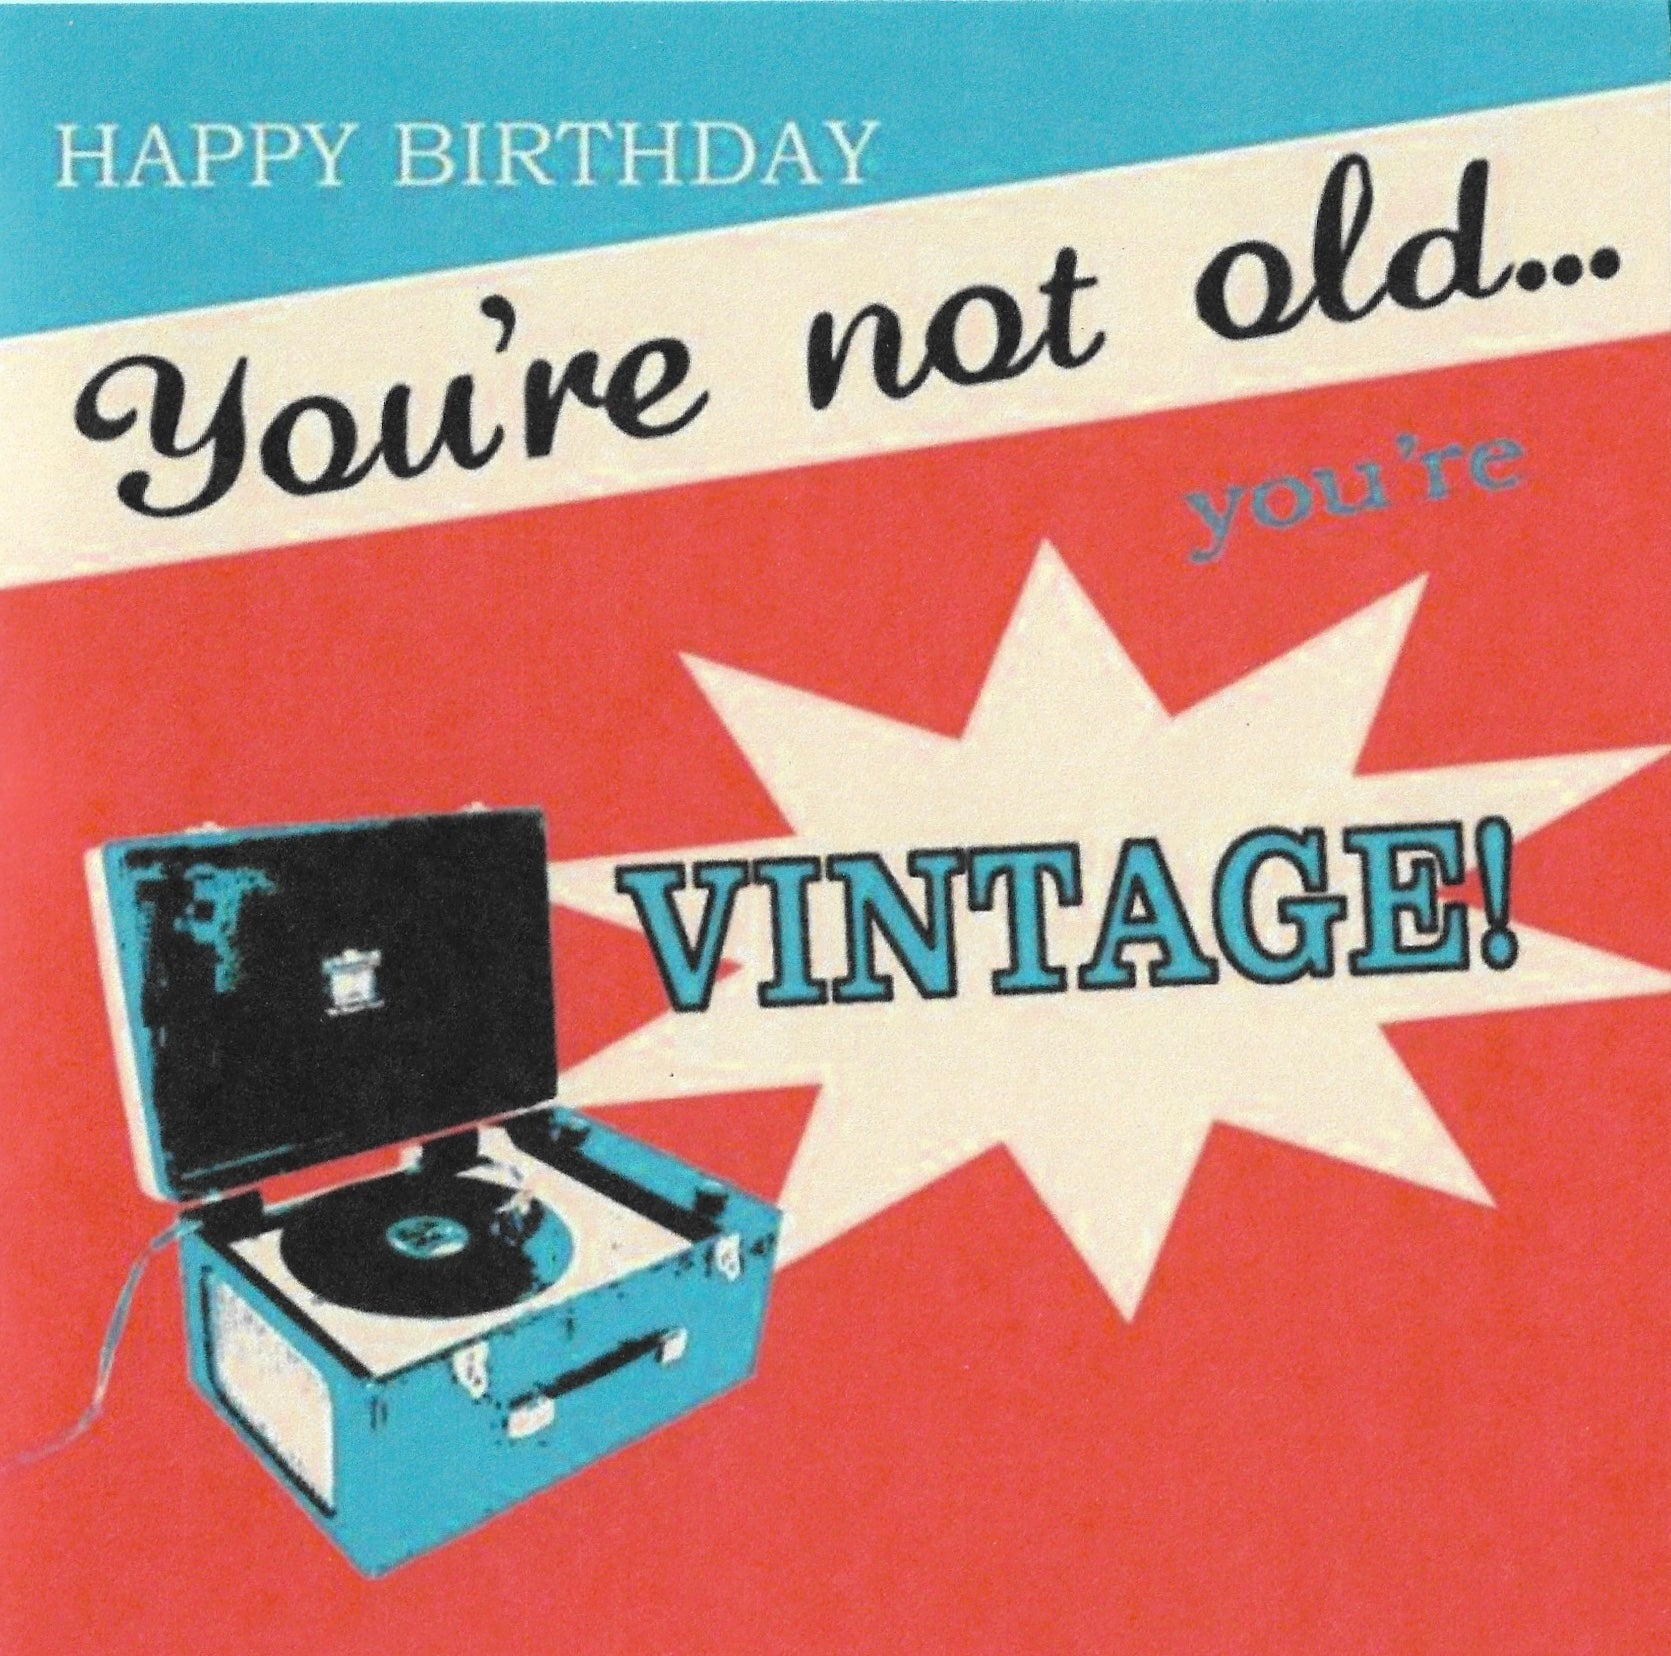 """You're Not Old, You're Vintage!' Birthday Card"